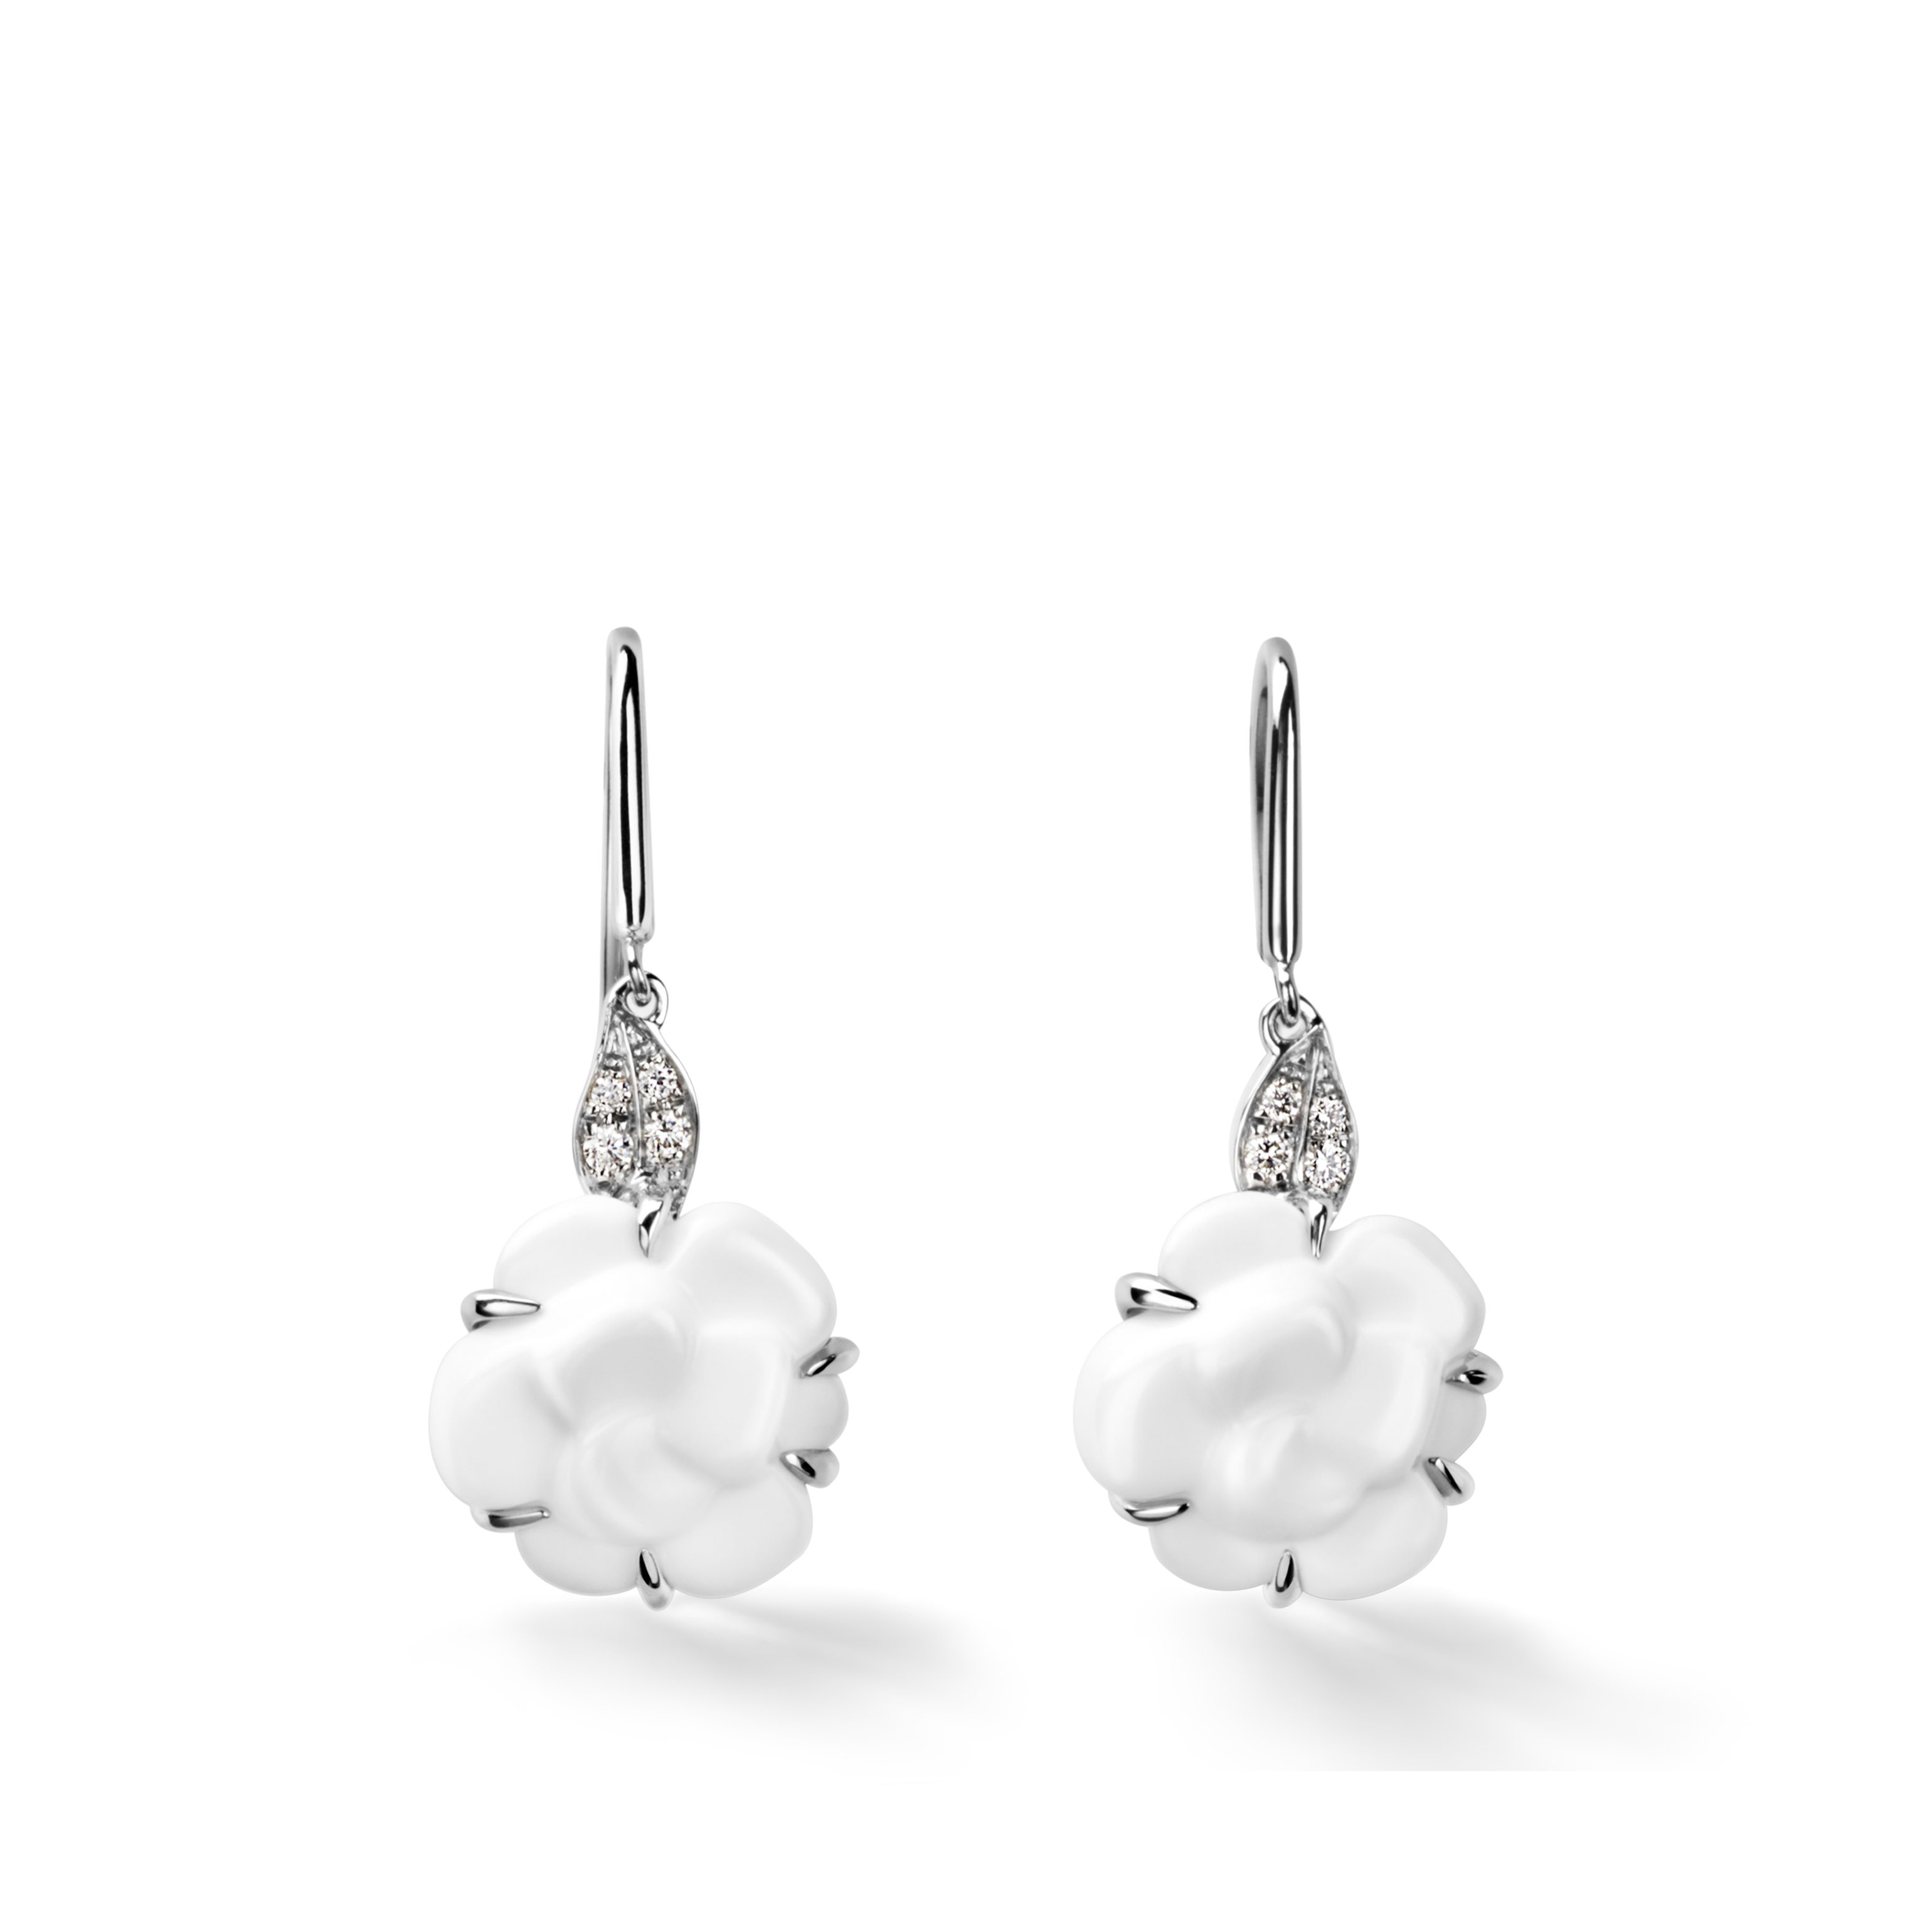 Camélia Sculpté earrings - 18K white gold, diamonds, white agate - CHANEL - Default view - see standard sized version